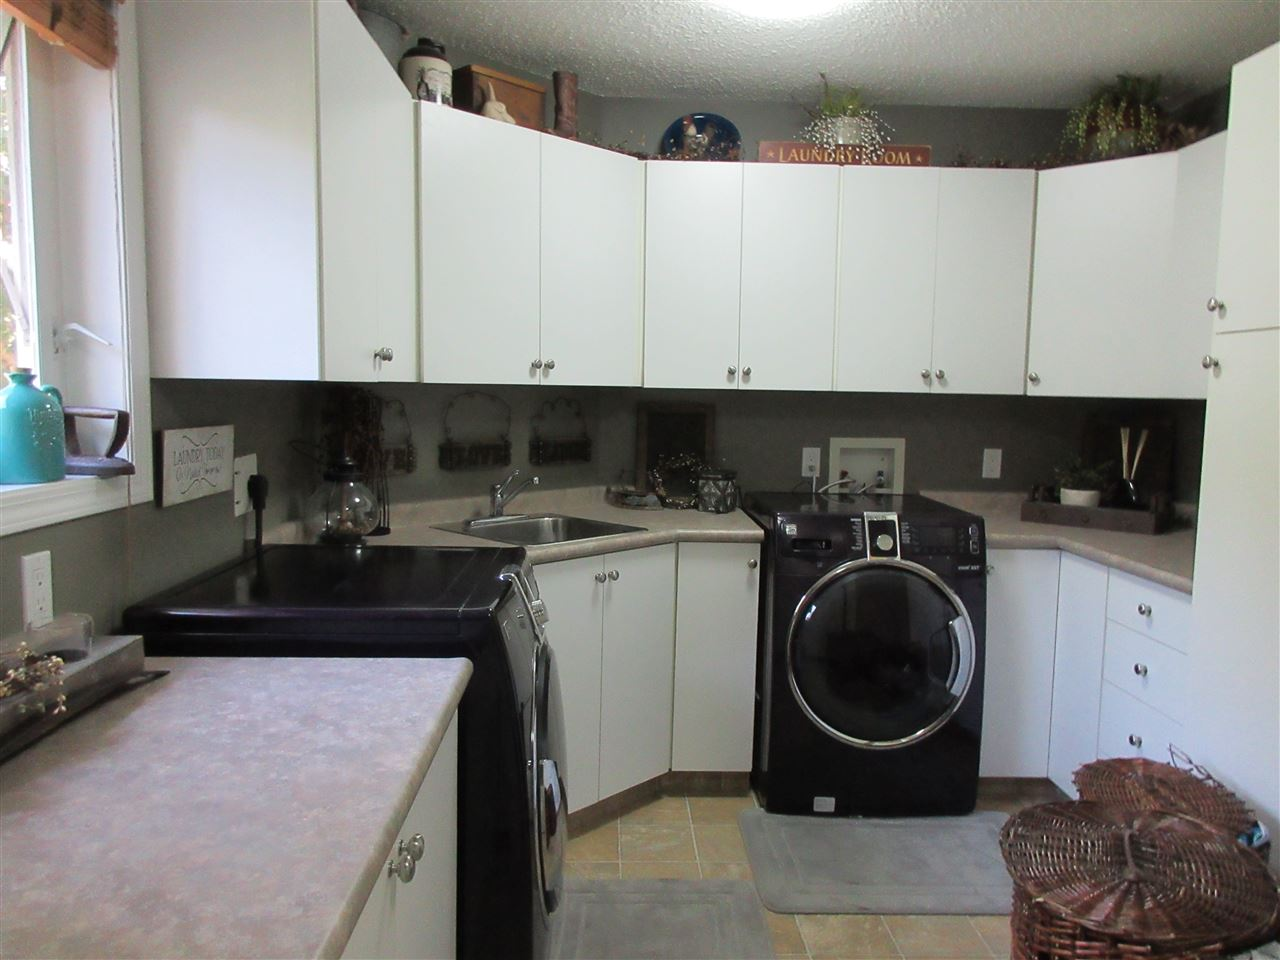 This main floor laundry has lots of cabinets at one end and room for a freezer at the other end